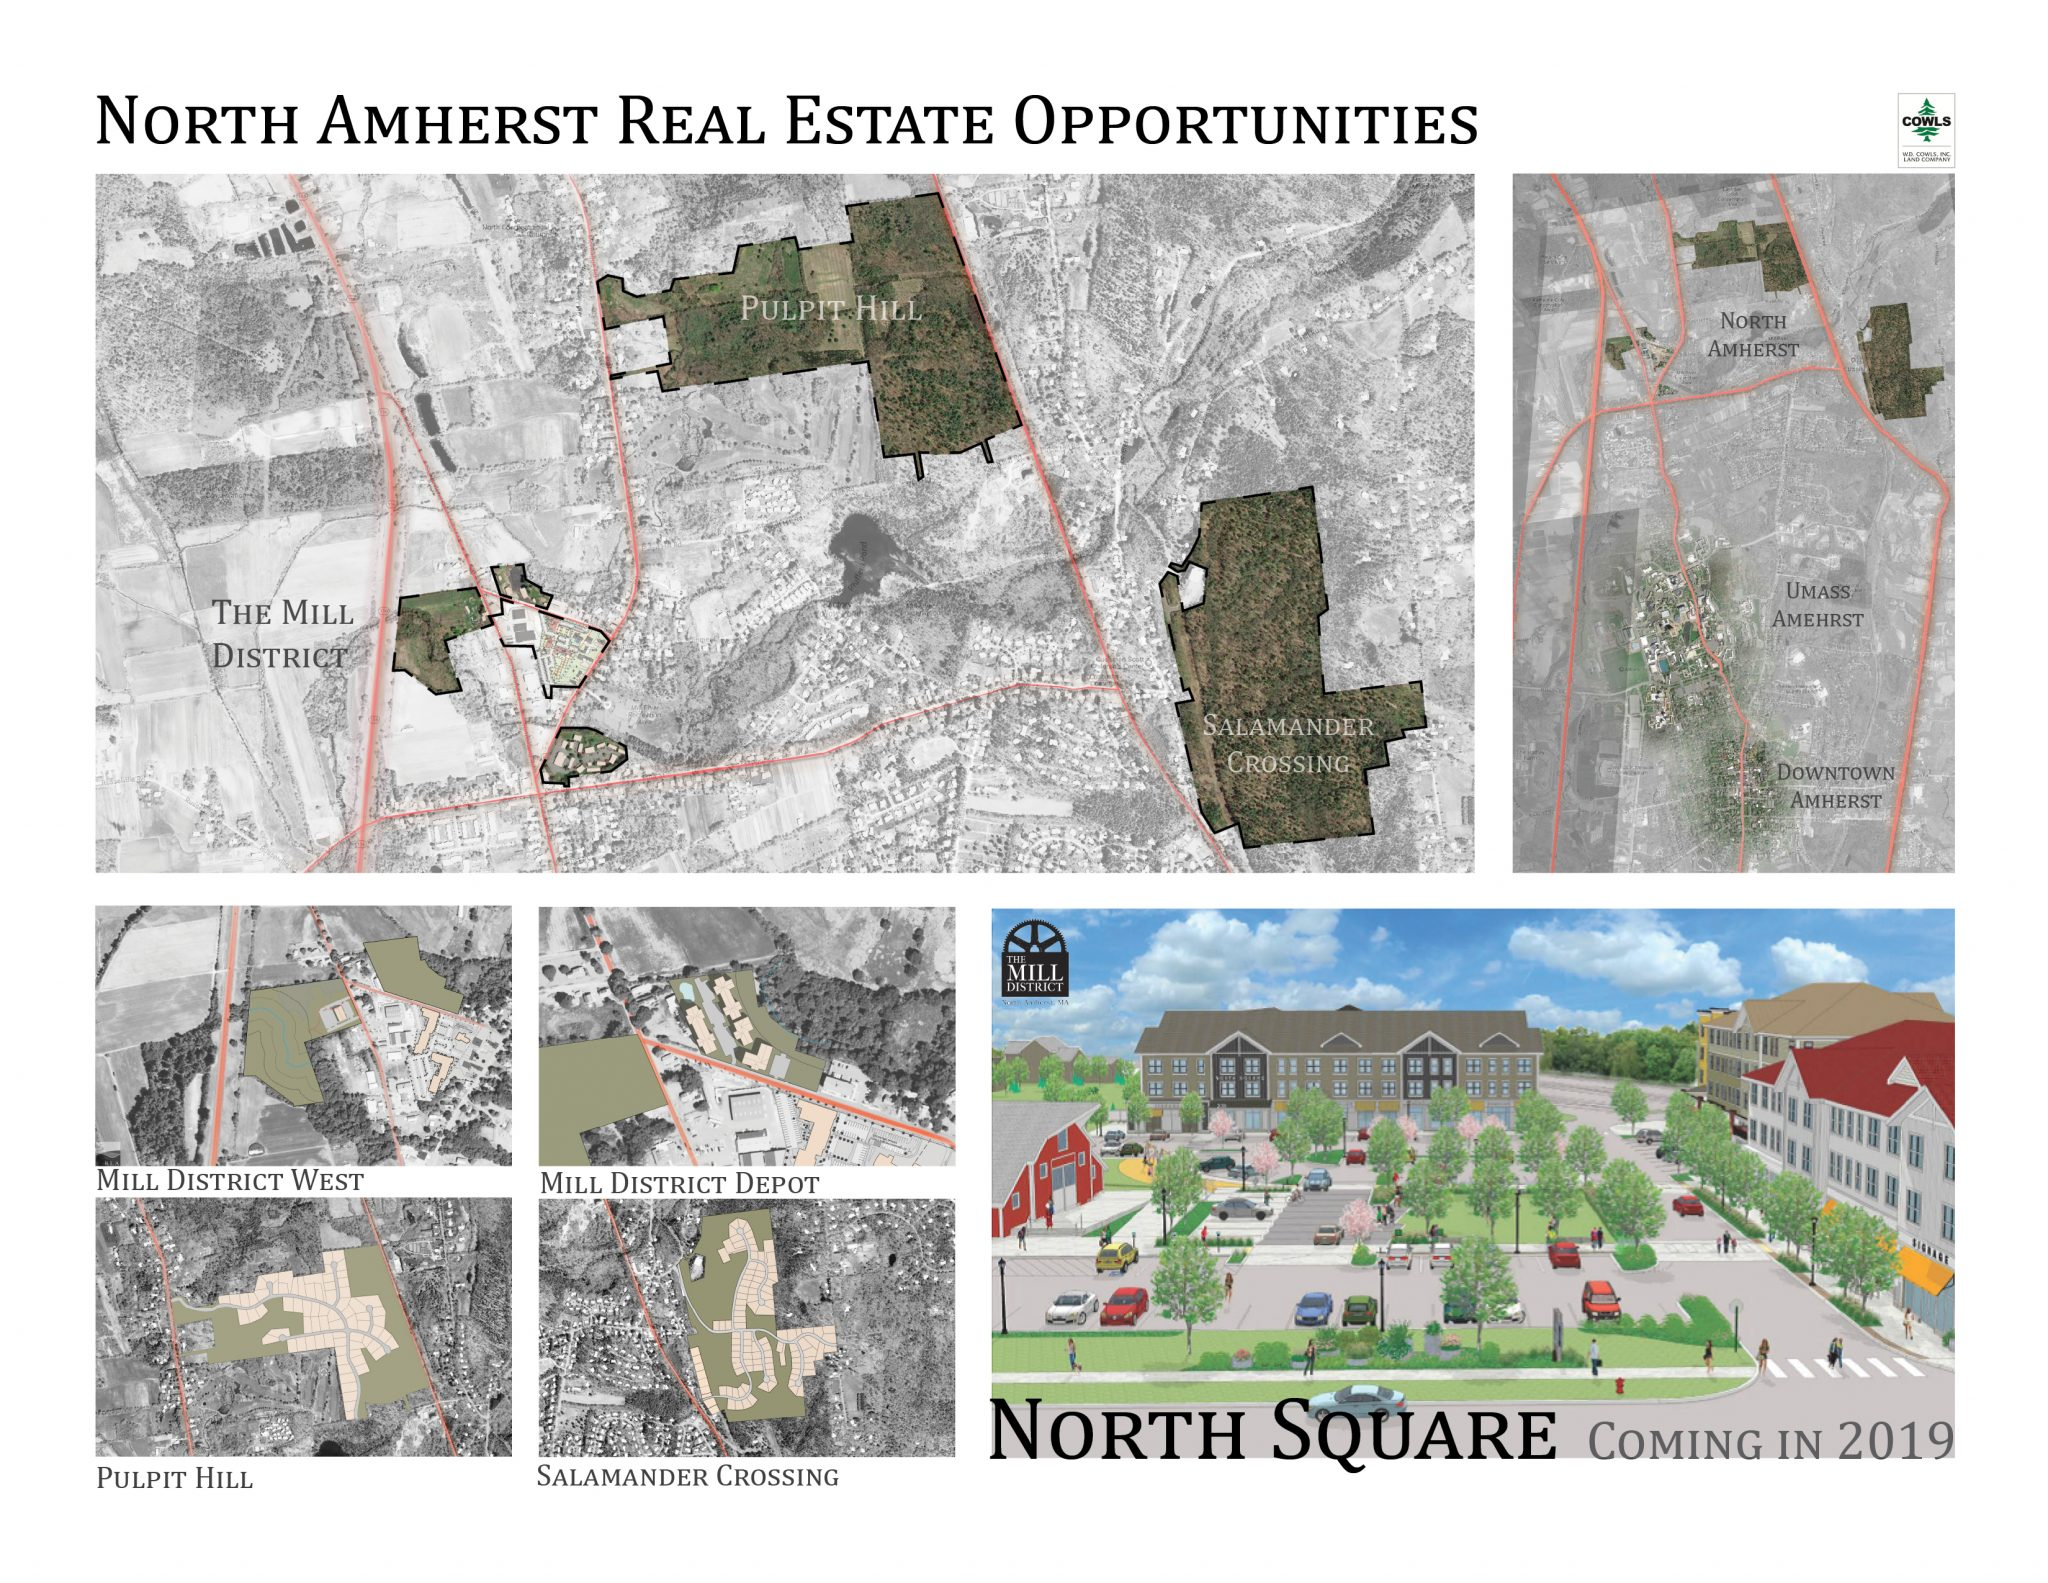 North Amherst Real Estate Opportunities